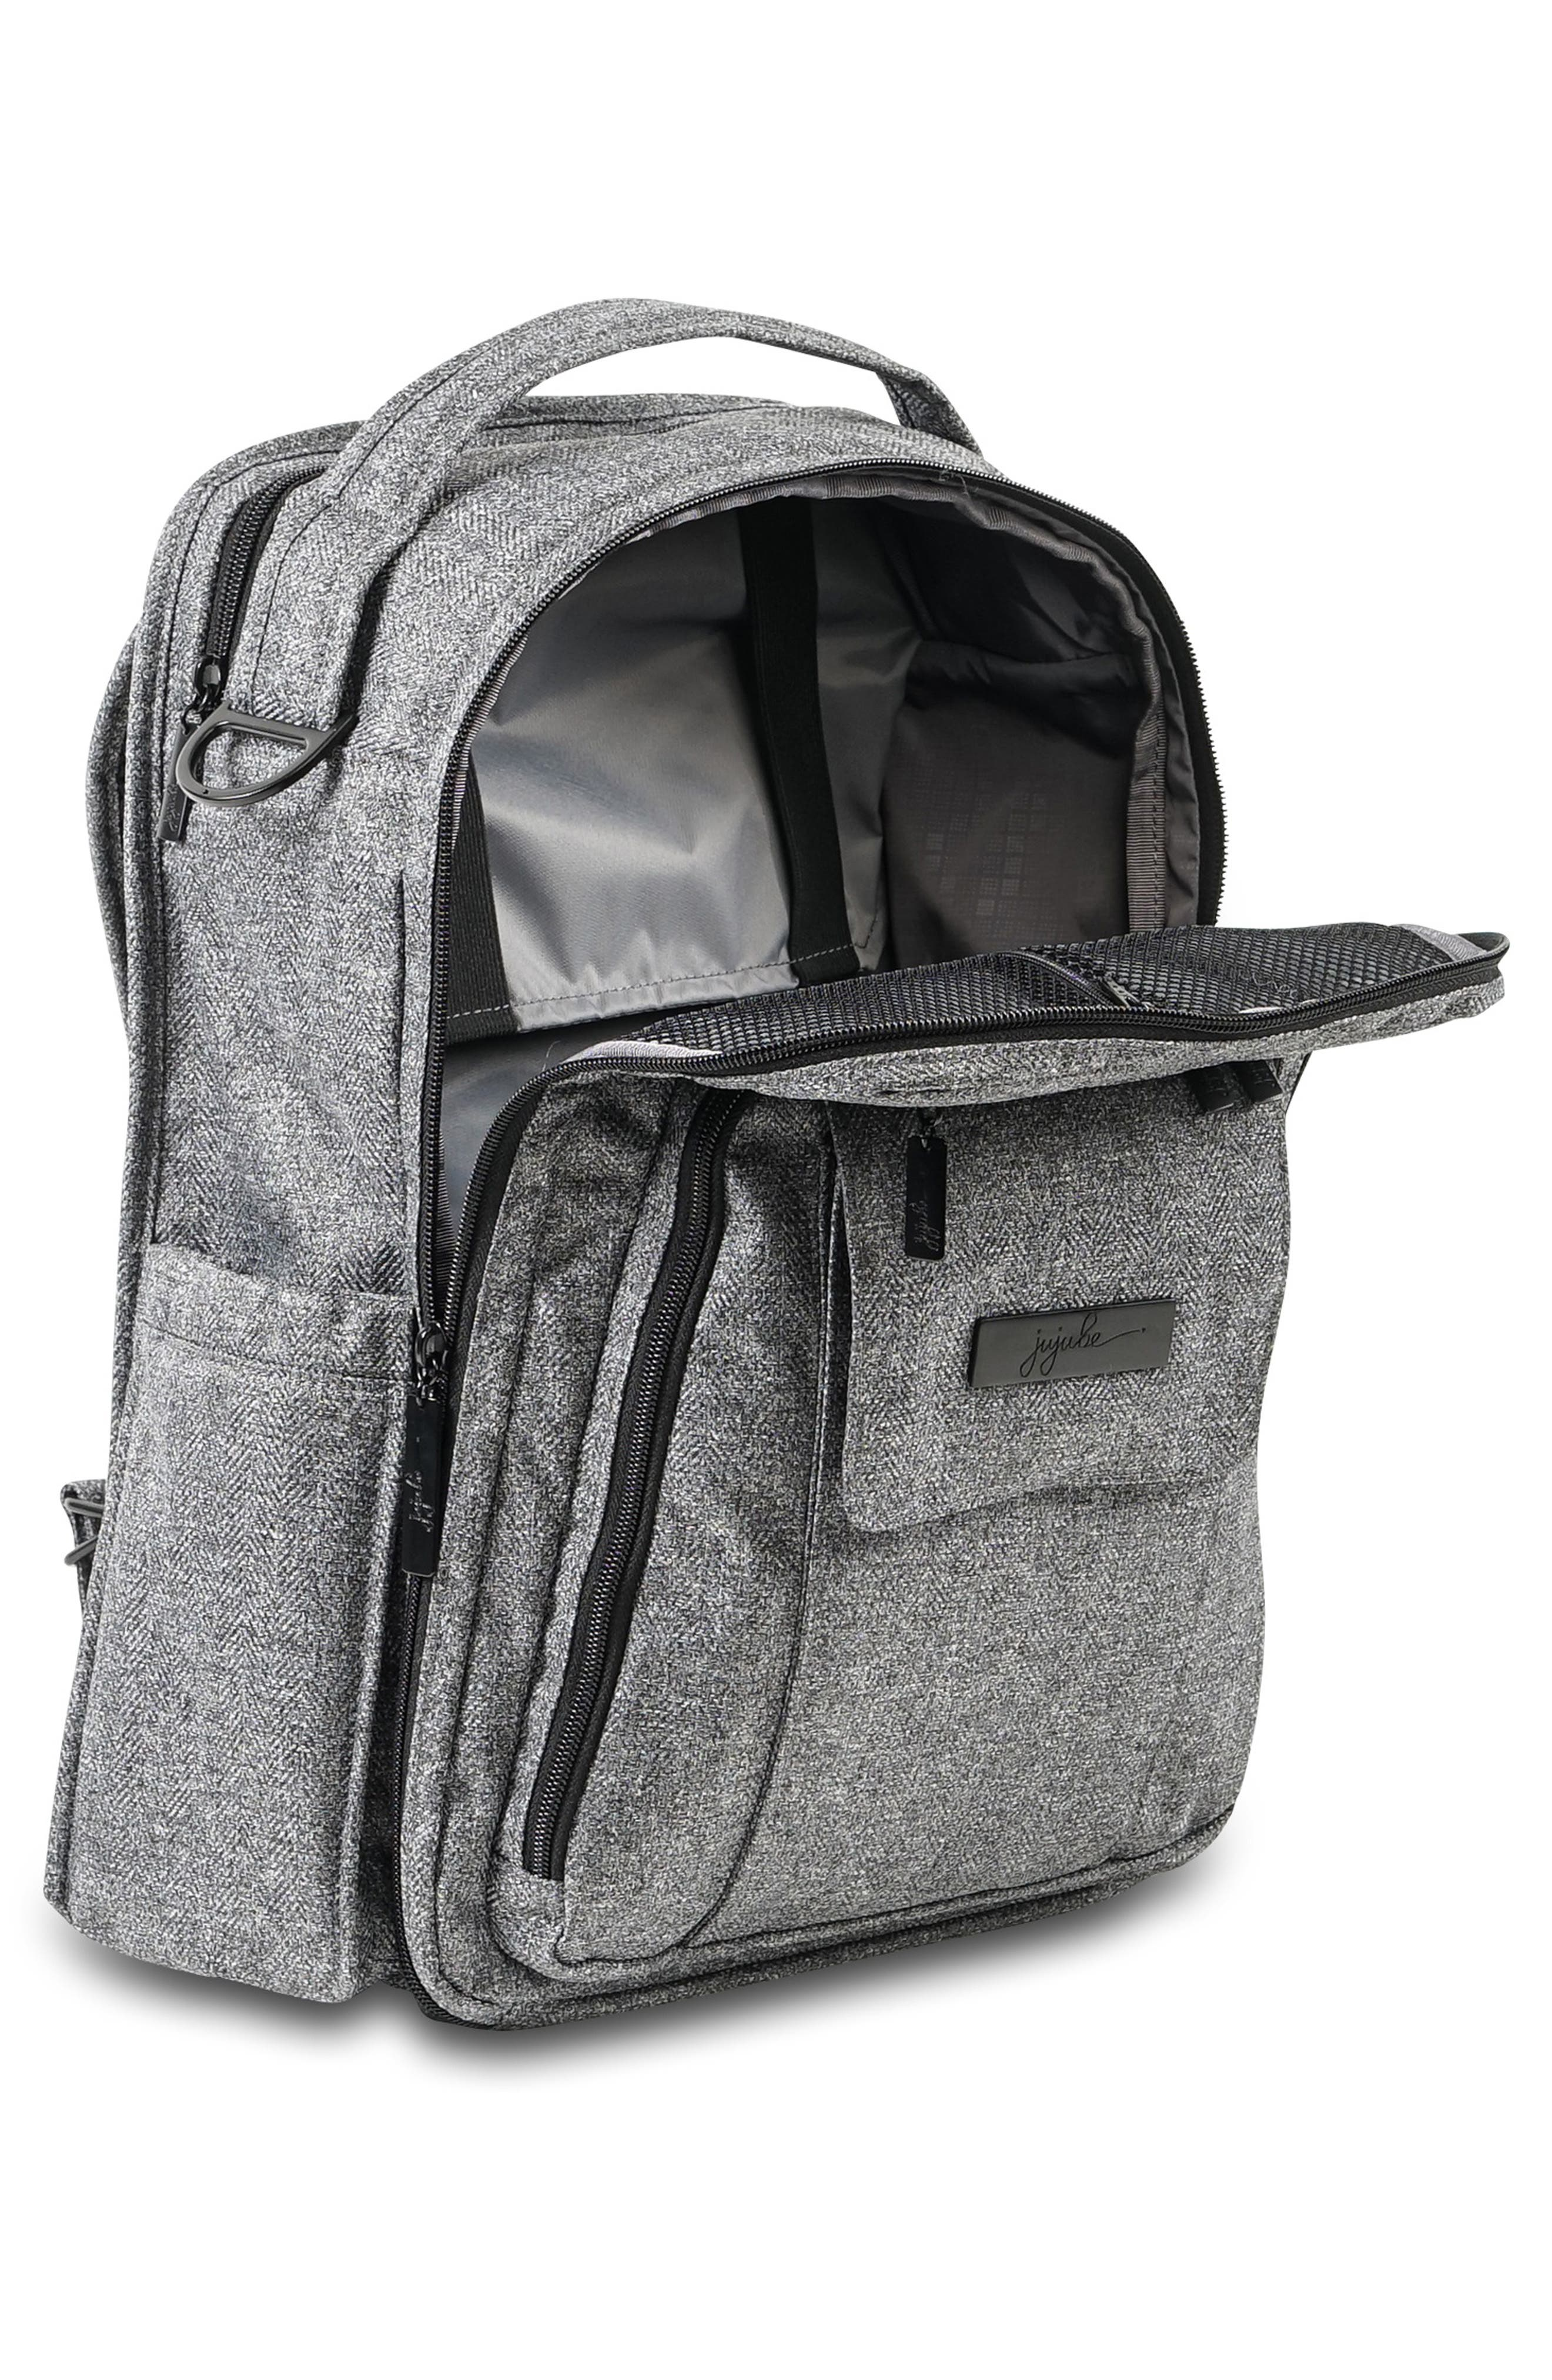 'Be Right Back - Onyx Collection' Diaper Backpack,                             Alternate thumbnail 3, color,                             GRAY MATTER